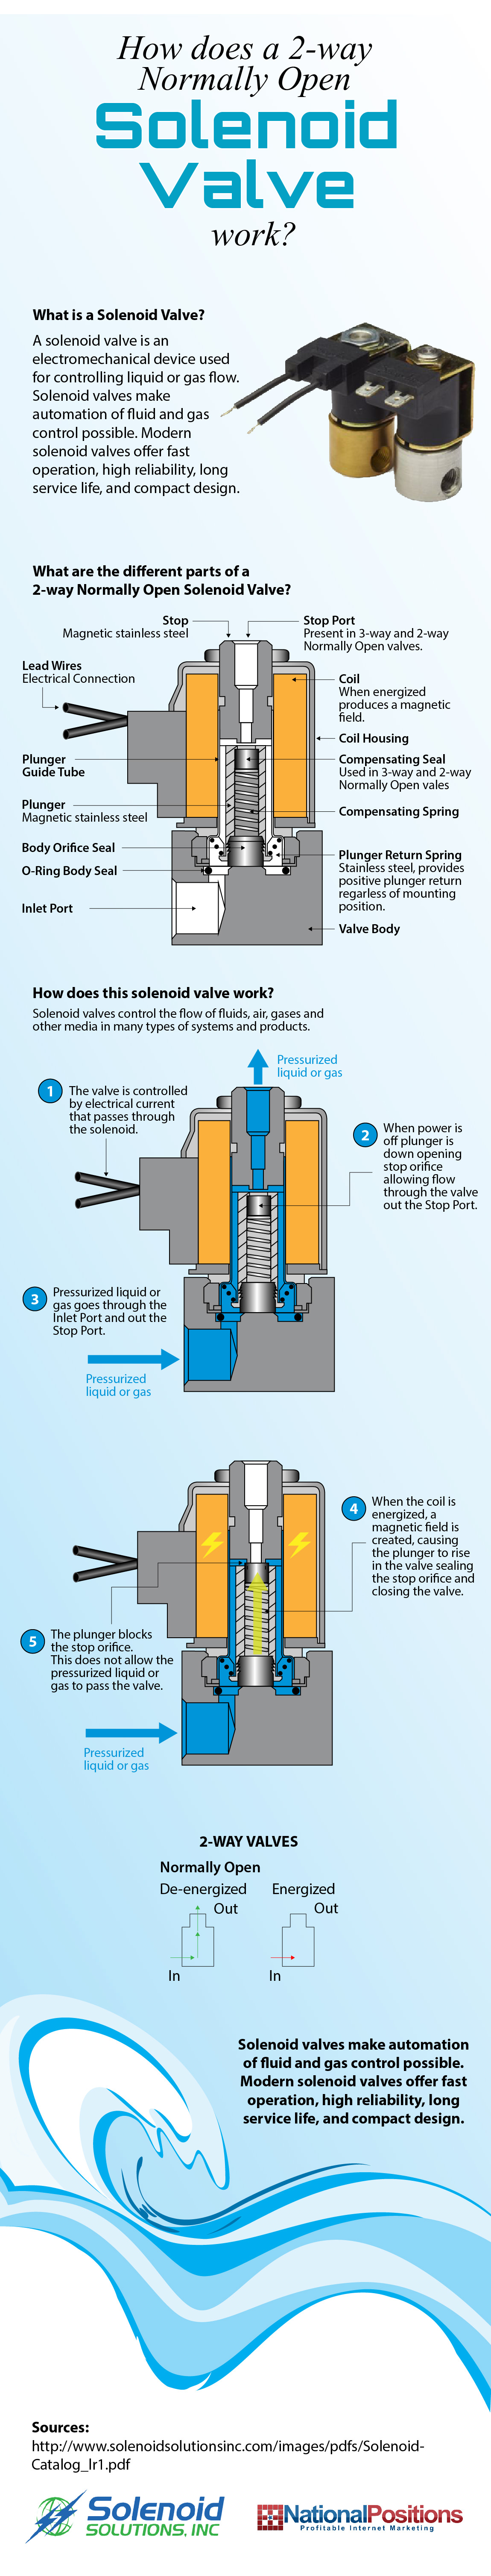 How normally open solenoid valves work solenoid solutions how normally open solenoid valves work biocorpaavc Choice Image